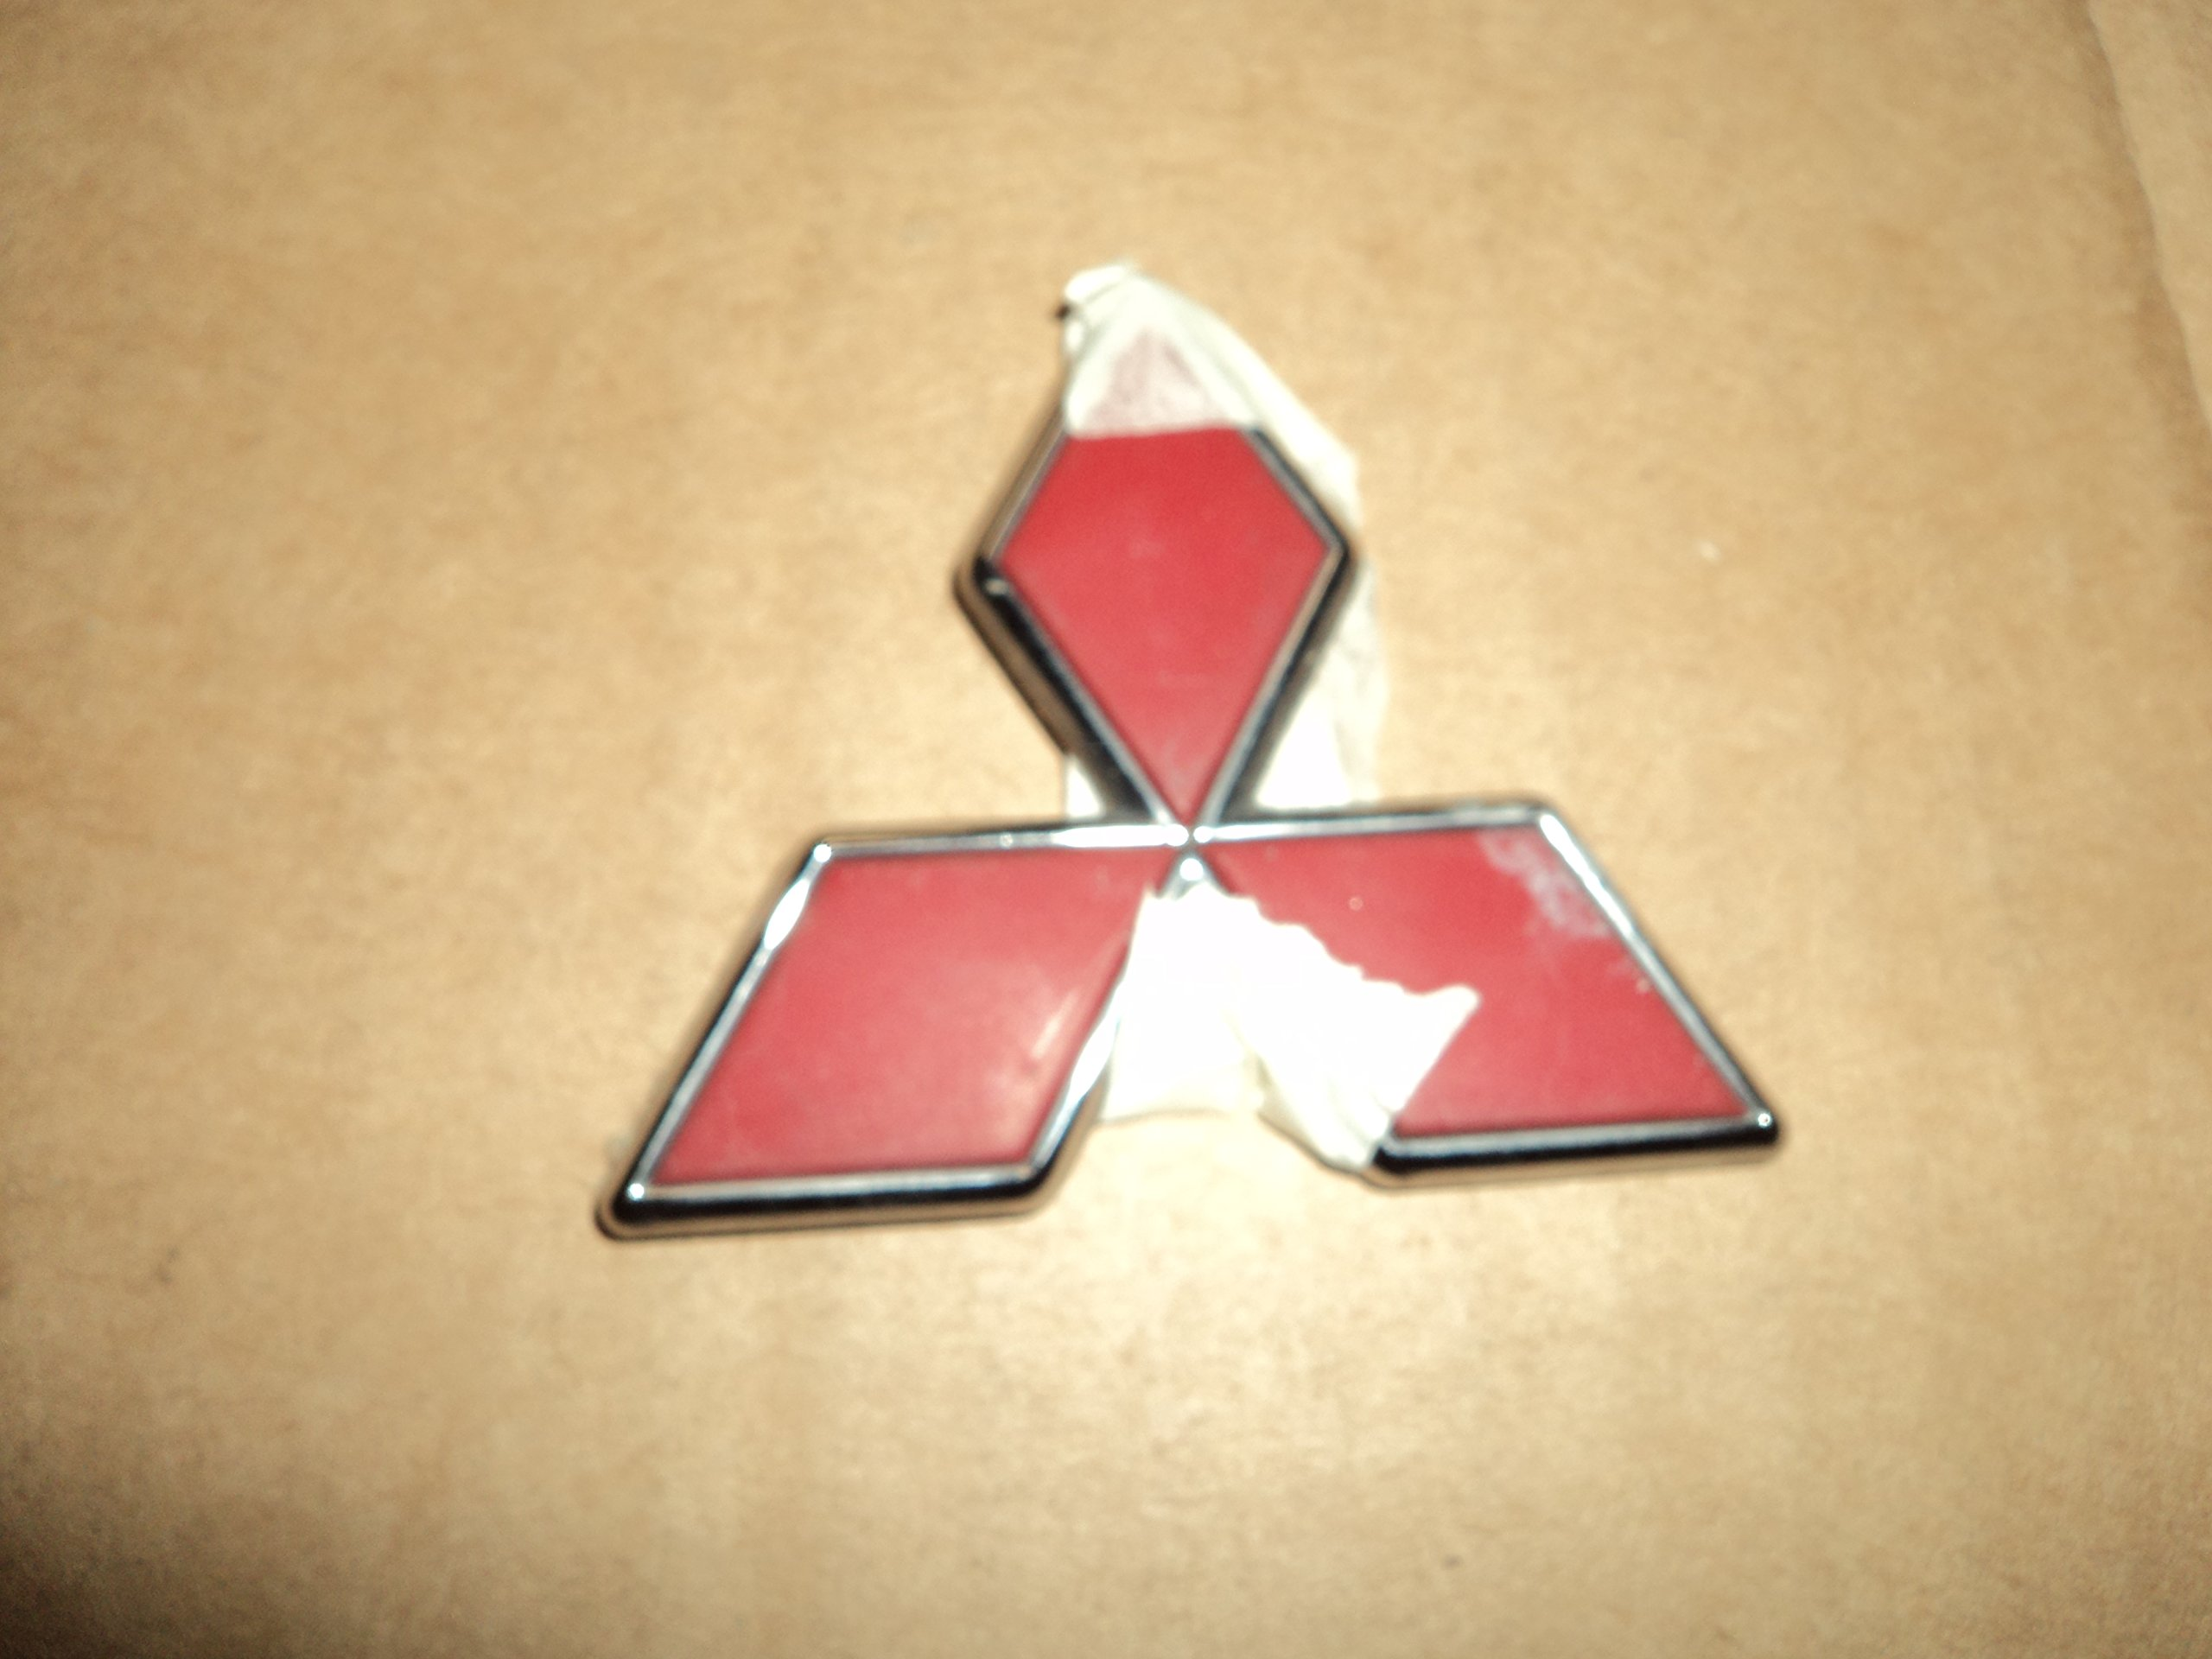 Mitsubishi Montero Sport Red Rear Trunk OEM Used Emblem Badge Diamond